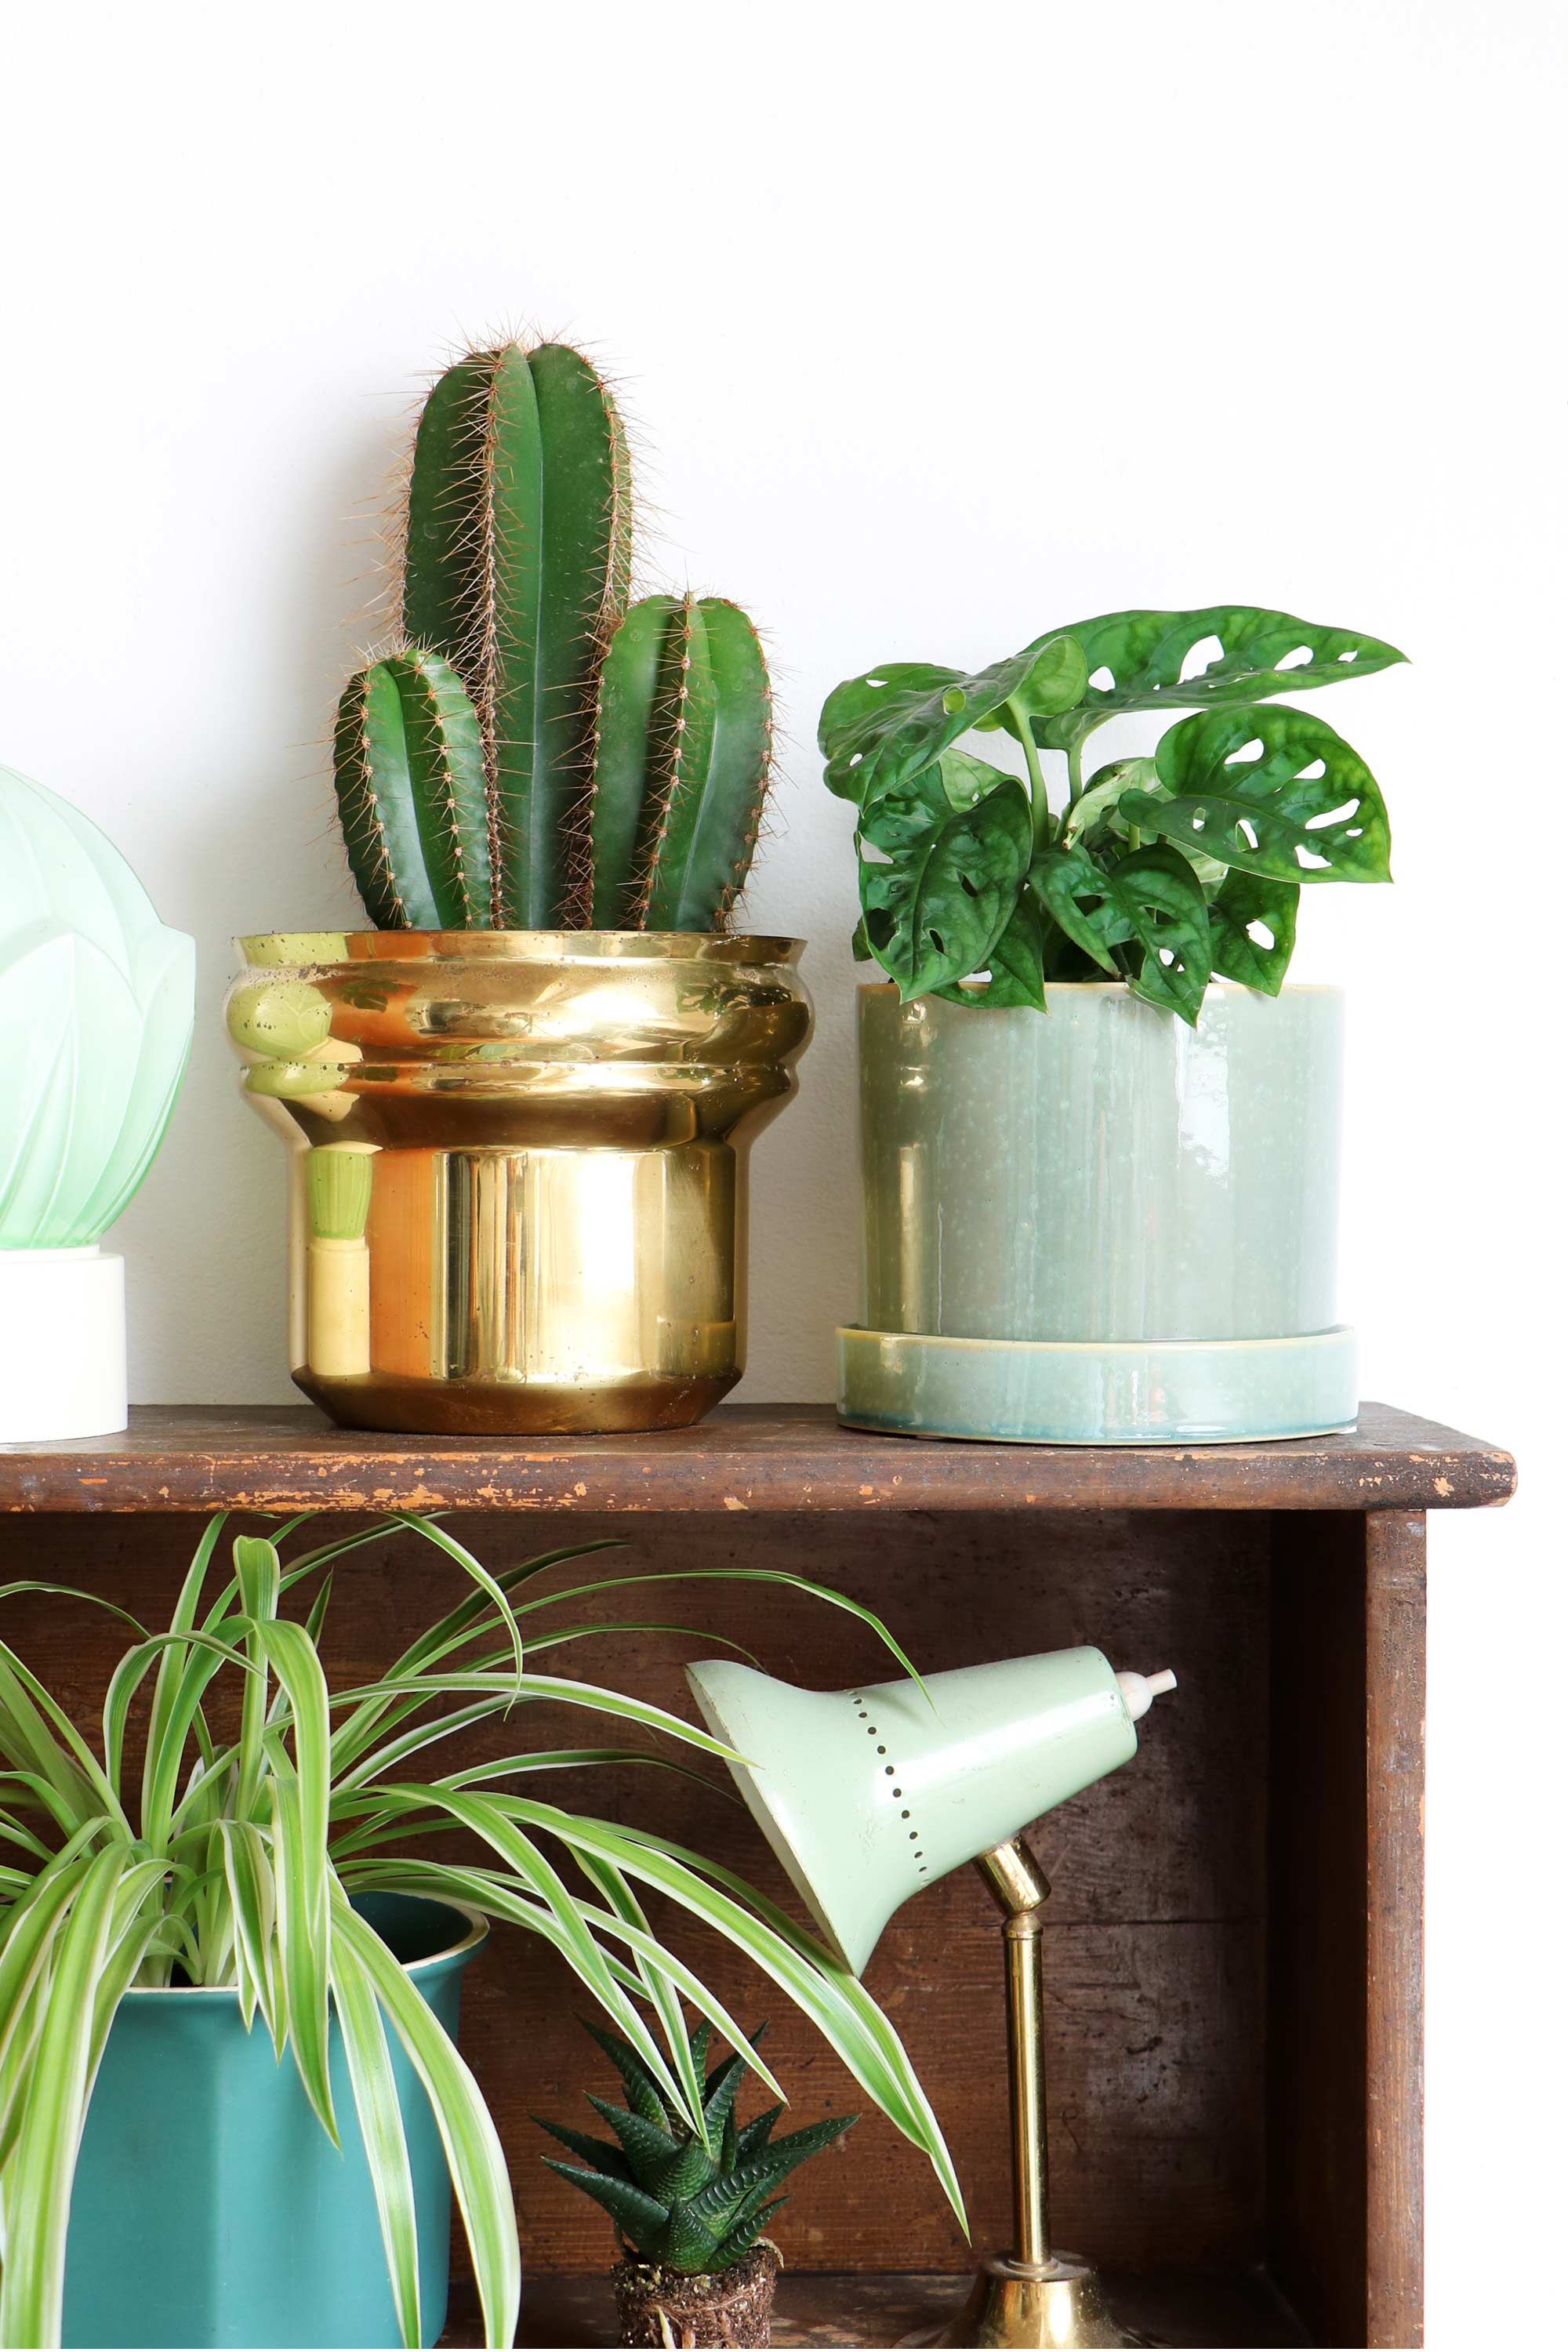 Monstera obliqua plant en cactus in gouden pot